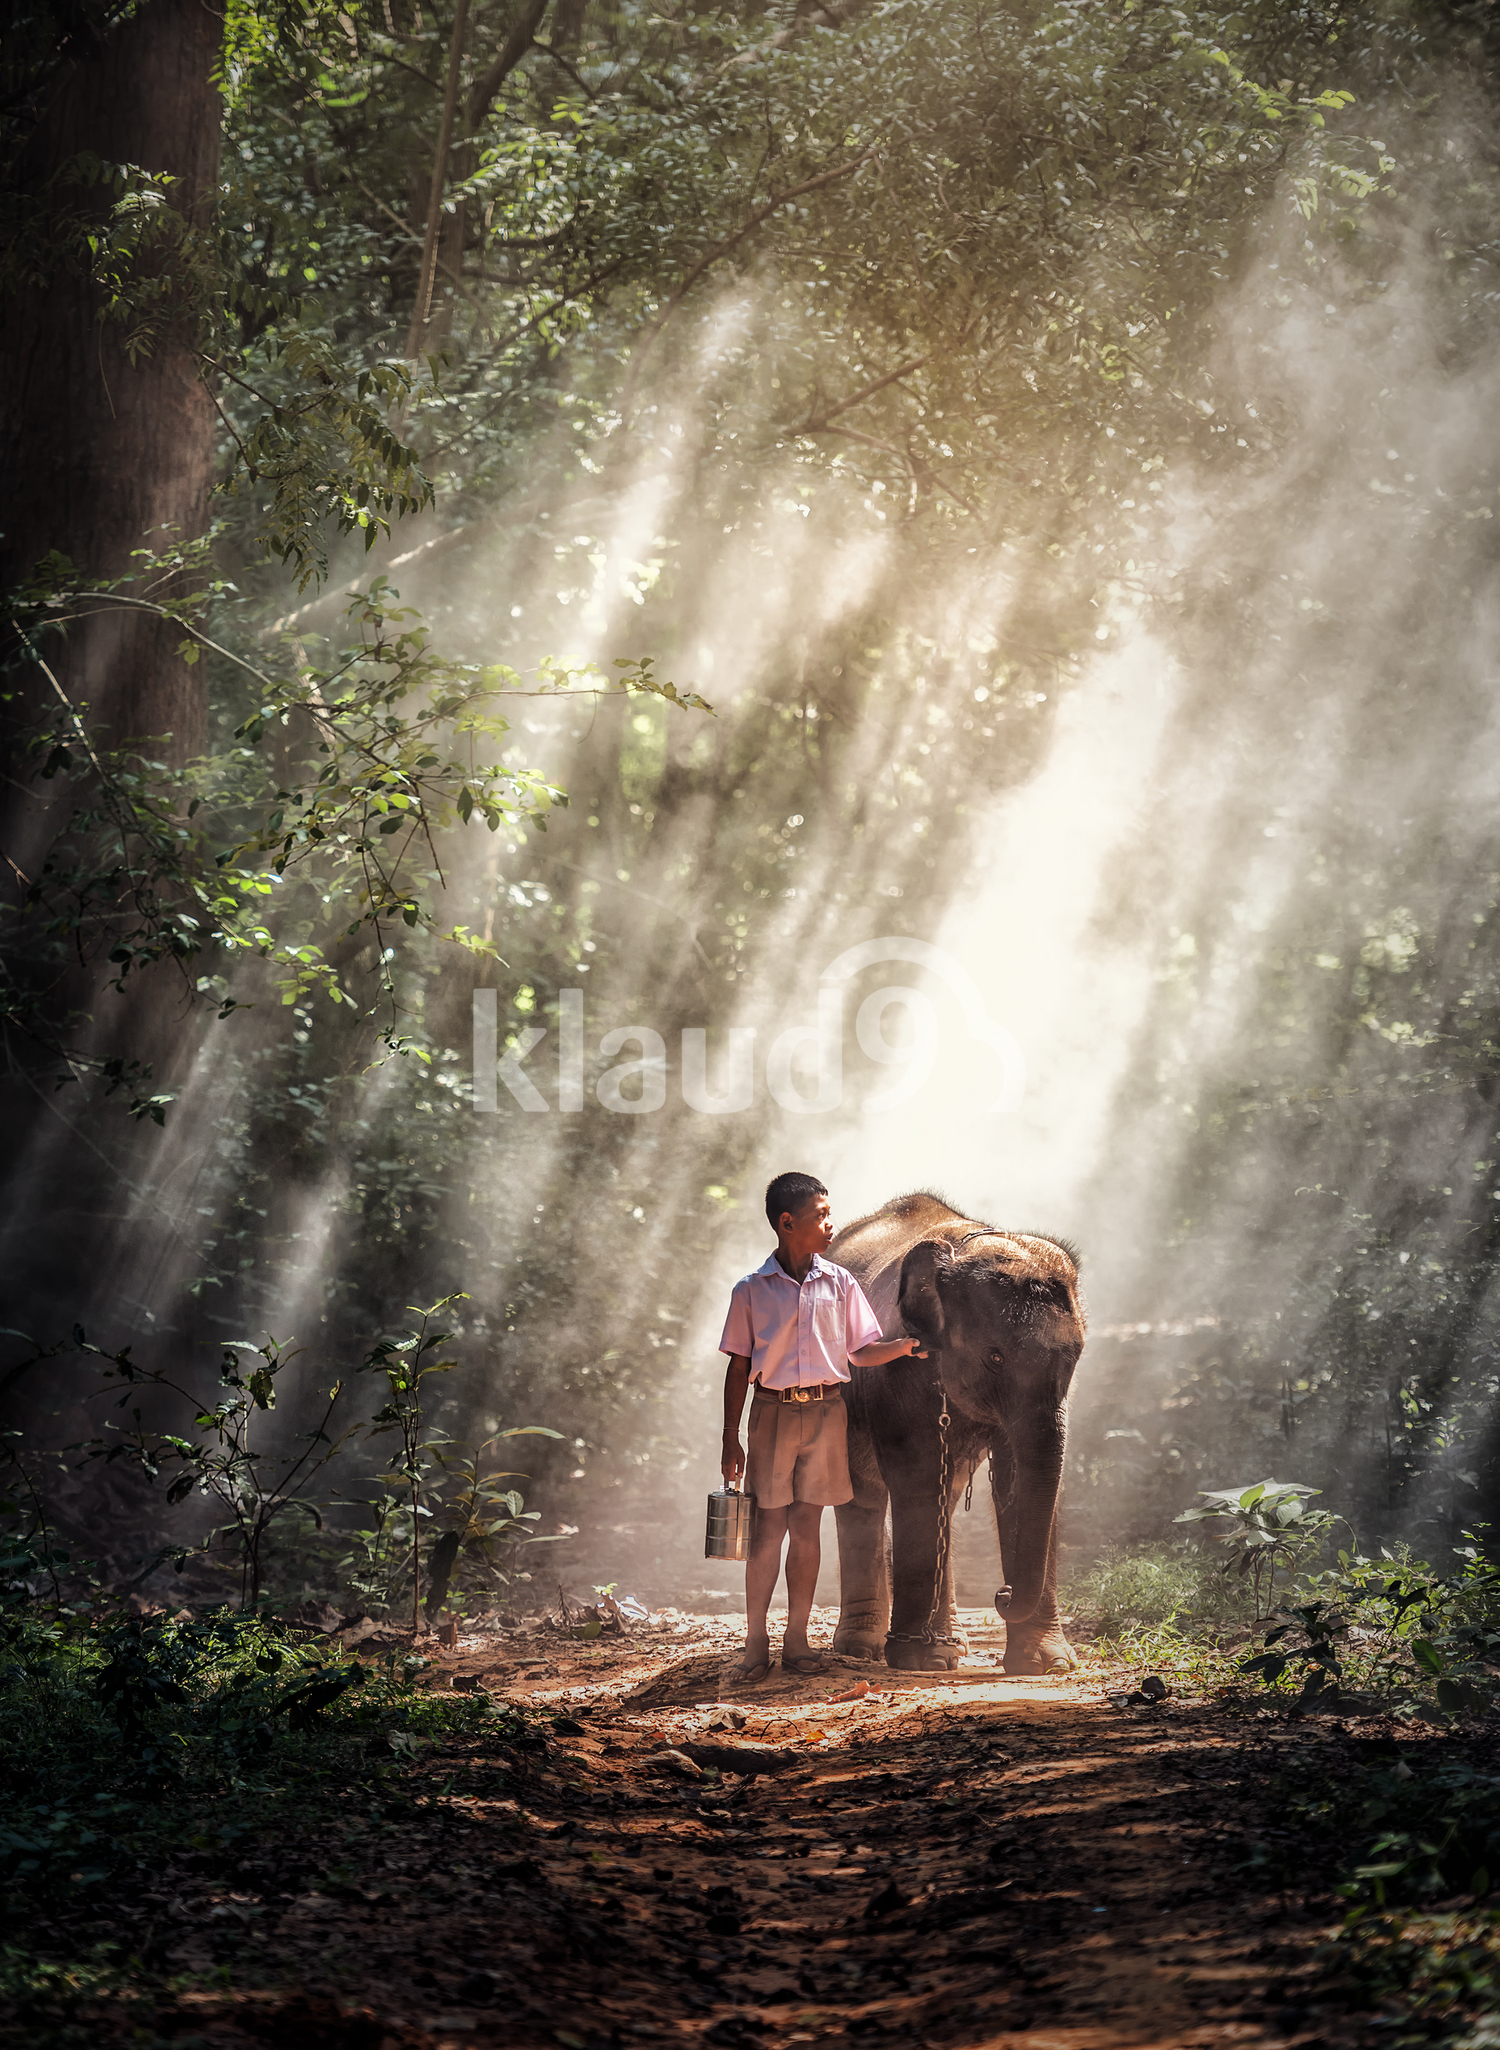 Boy with elephant in forest